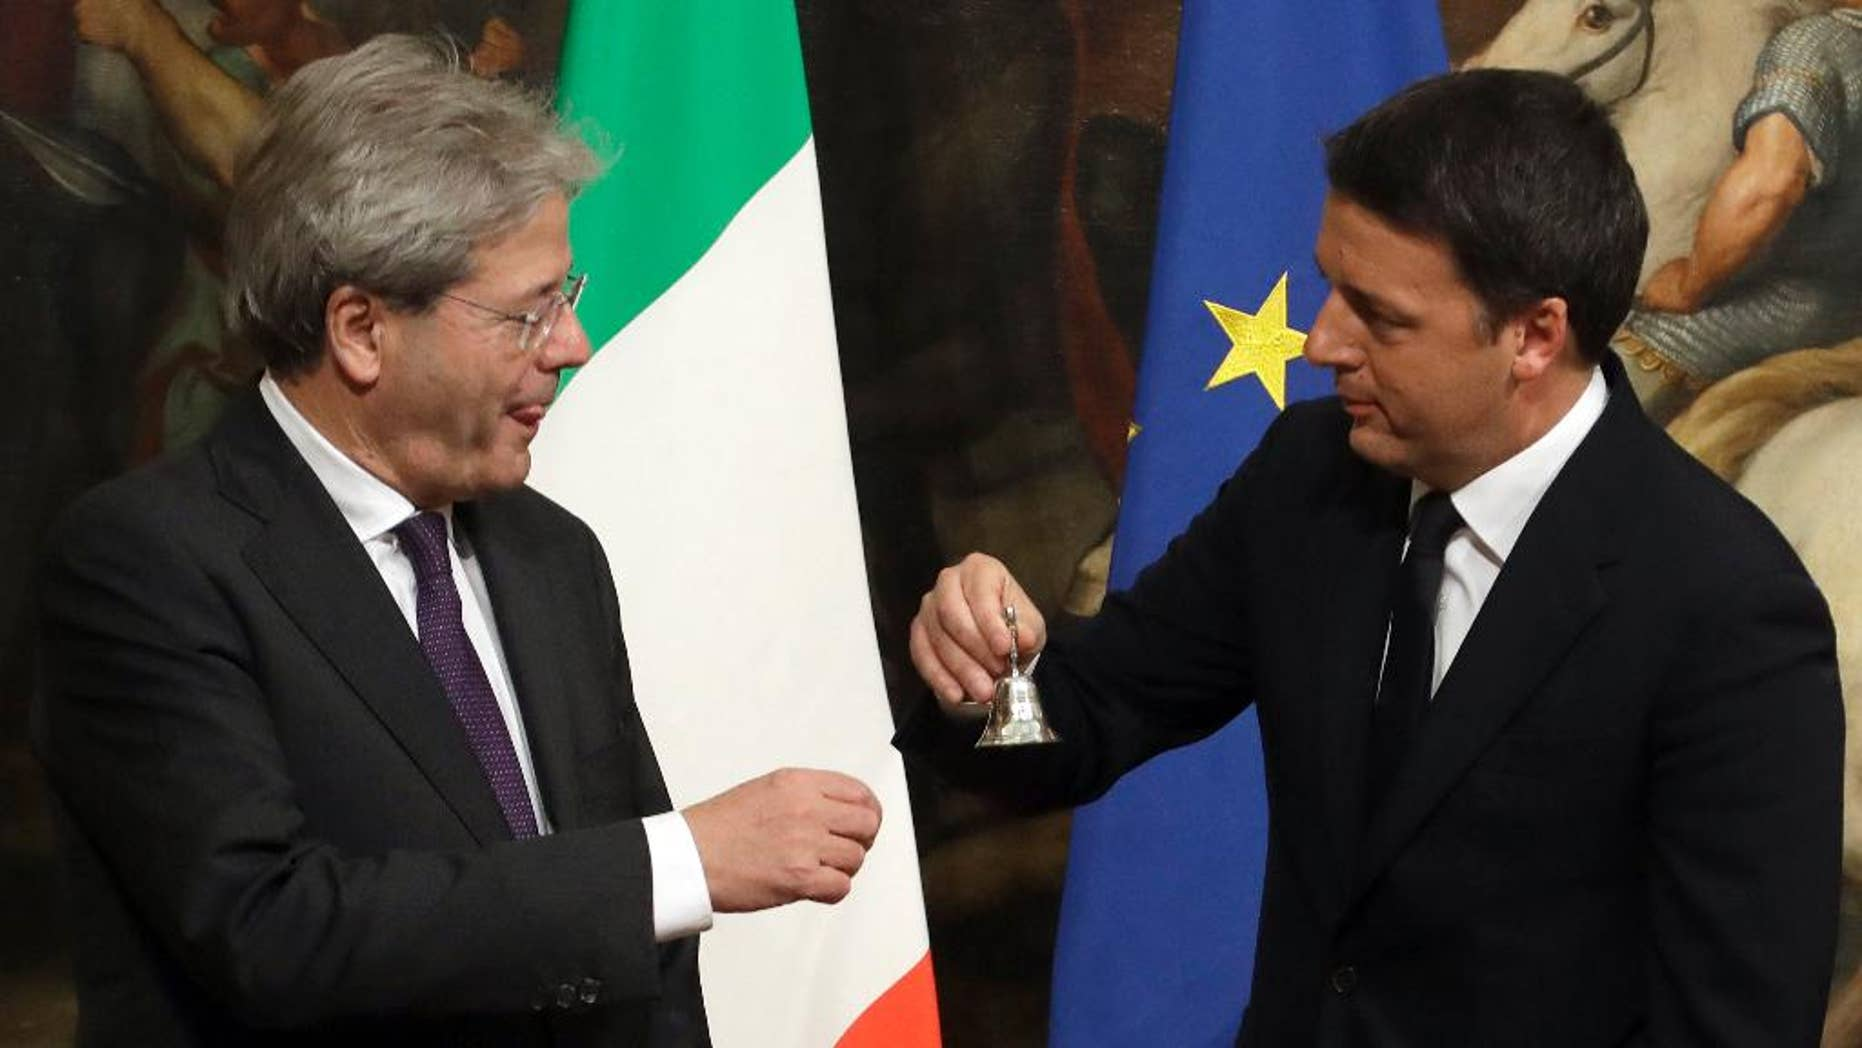 Italian outgoing Premier Matteo Renzi, right, hands over the cabinet minister bell to new Premier Paolo Gentiloni during the handover ceremony at Chigi Palace Premier's office, in Rome, Monday, Dec. 12, 2016. Paolo Gentiloni, a Democrat serving as foreign minister, formed Italy's new government Monday, keeping several key ministers from the coalition of Matteo Renzi, who resigned last week. (AP Photo/Gregorio Borgia)